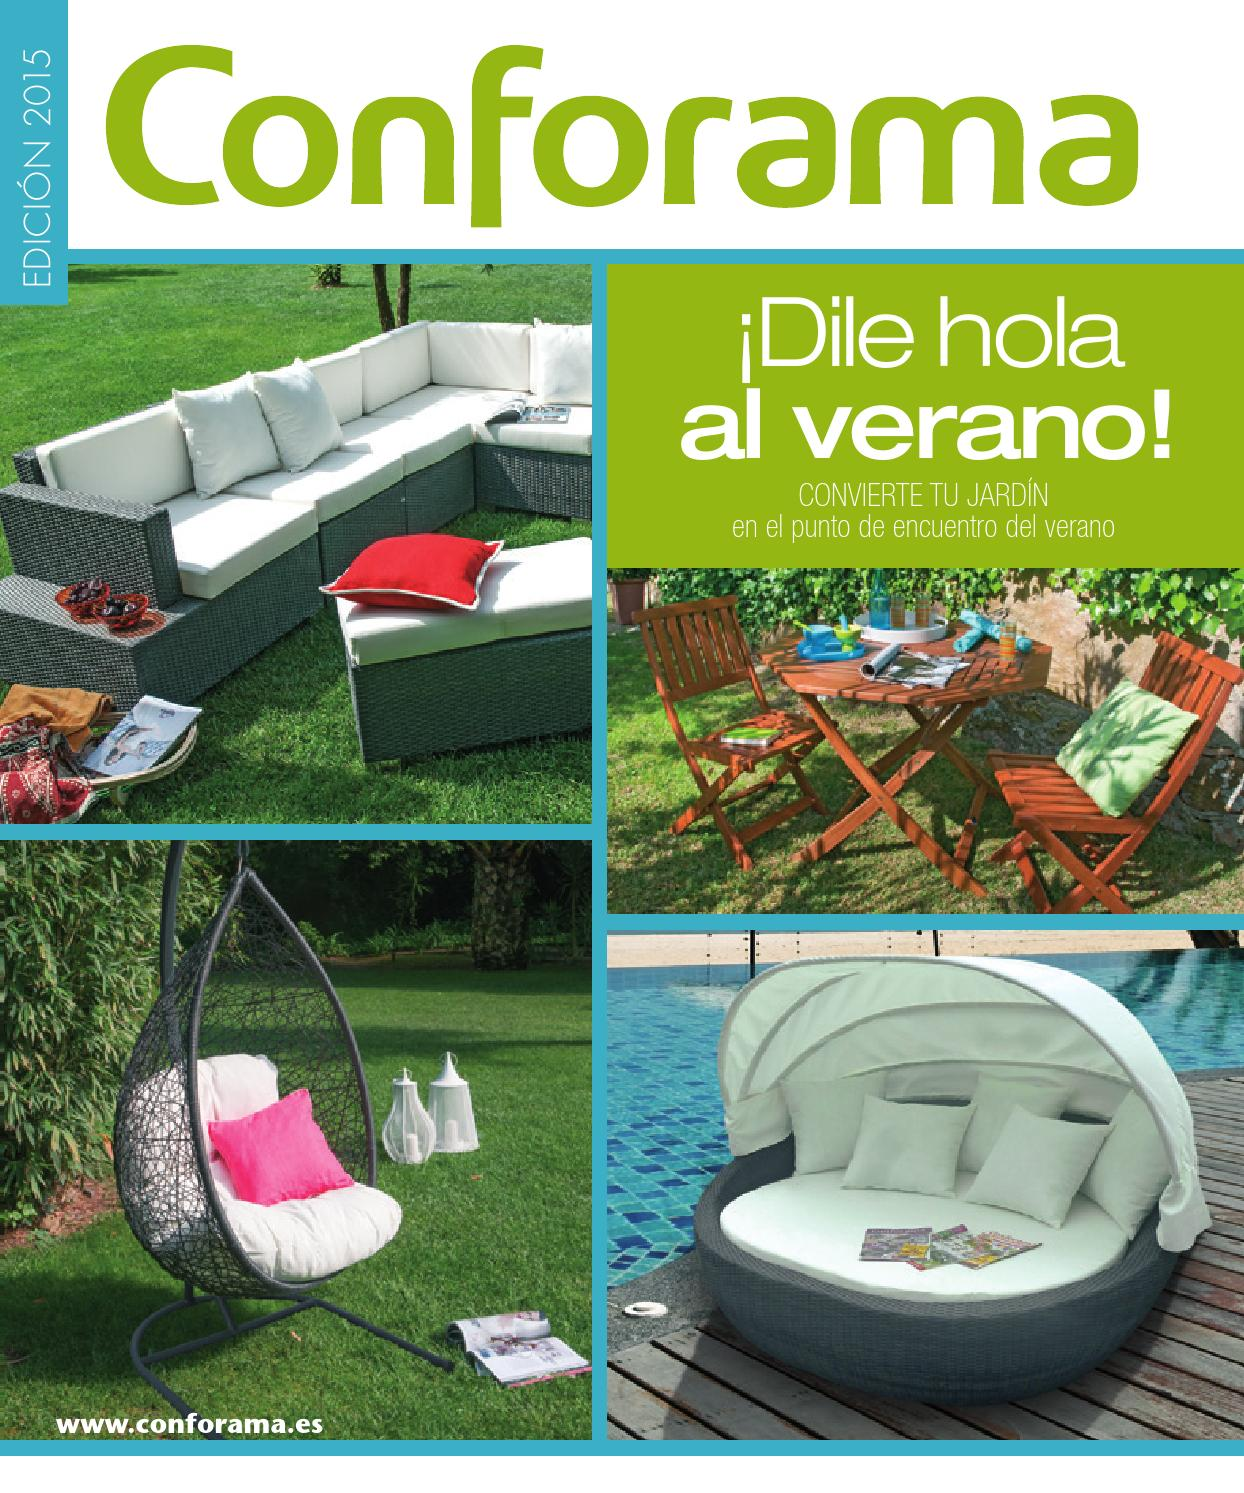 Muebles conforama jardin 2015 by losdescuentos - issuu